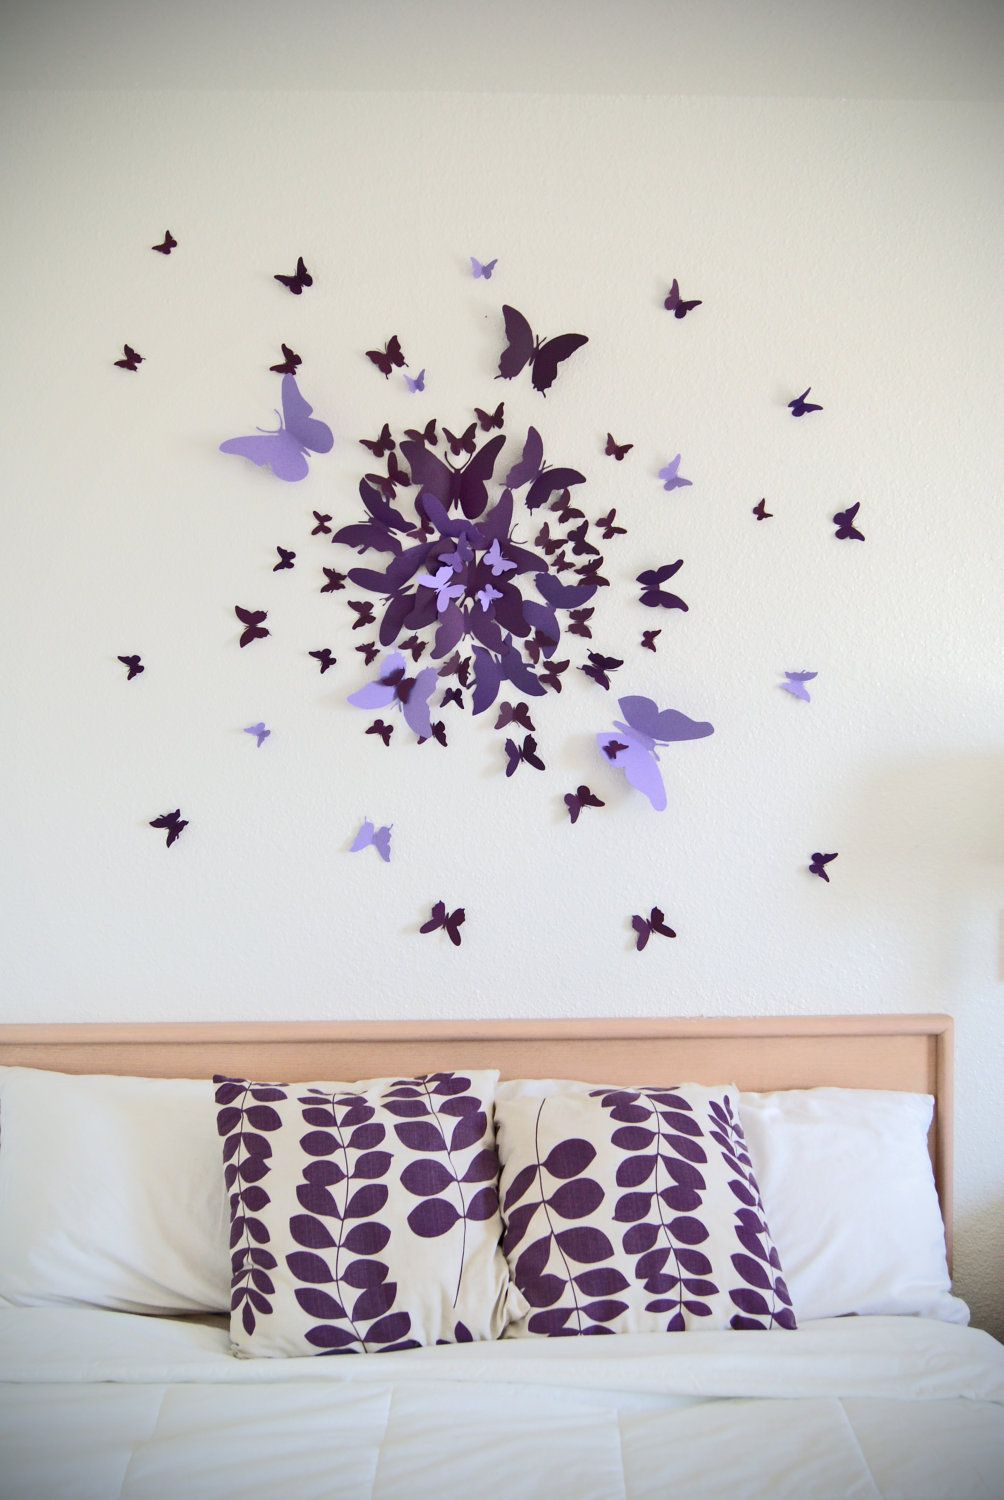 Free Us Shipping 70 3d Butterfly Wall Art Circle Burst 50 00 Via Etsy 3d Butterfly Wall